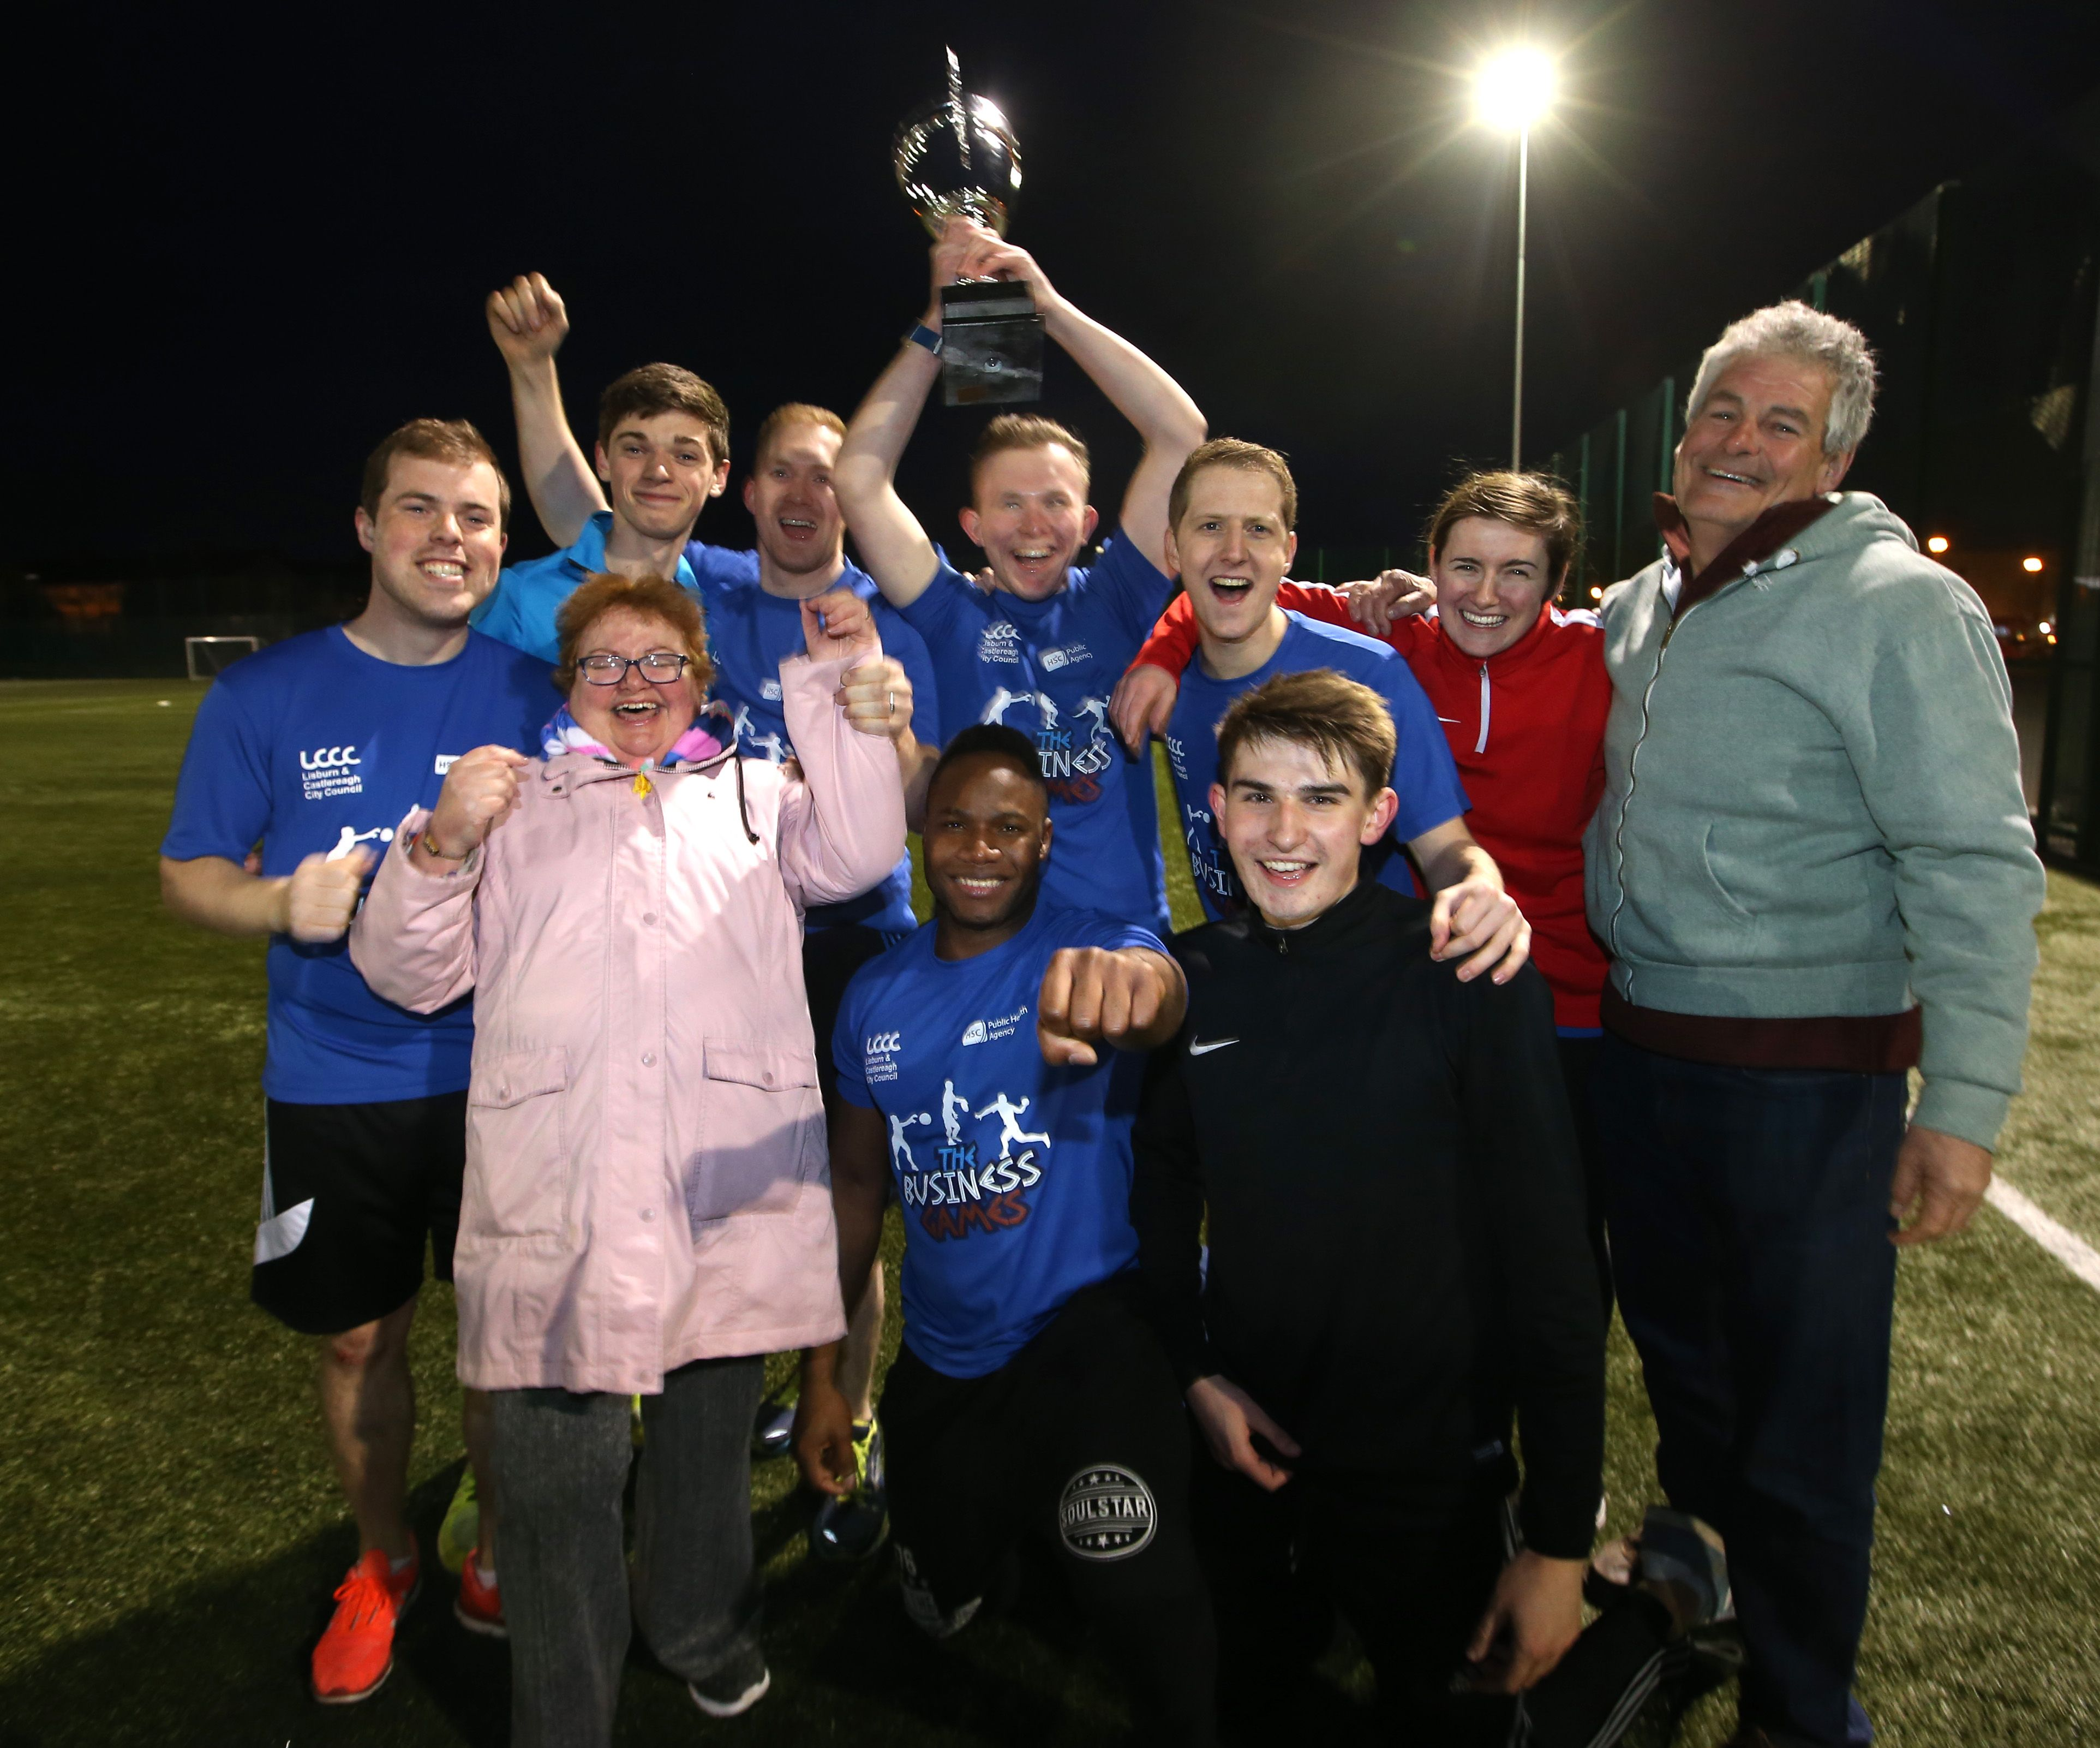 Business Games Conclude With Local Eatery Crowned Champion